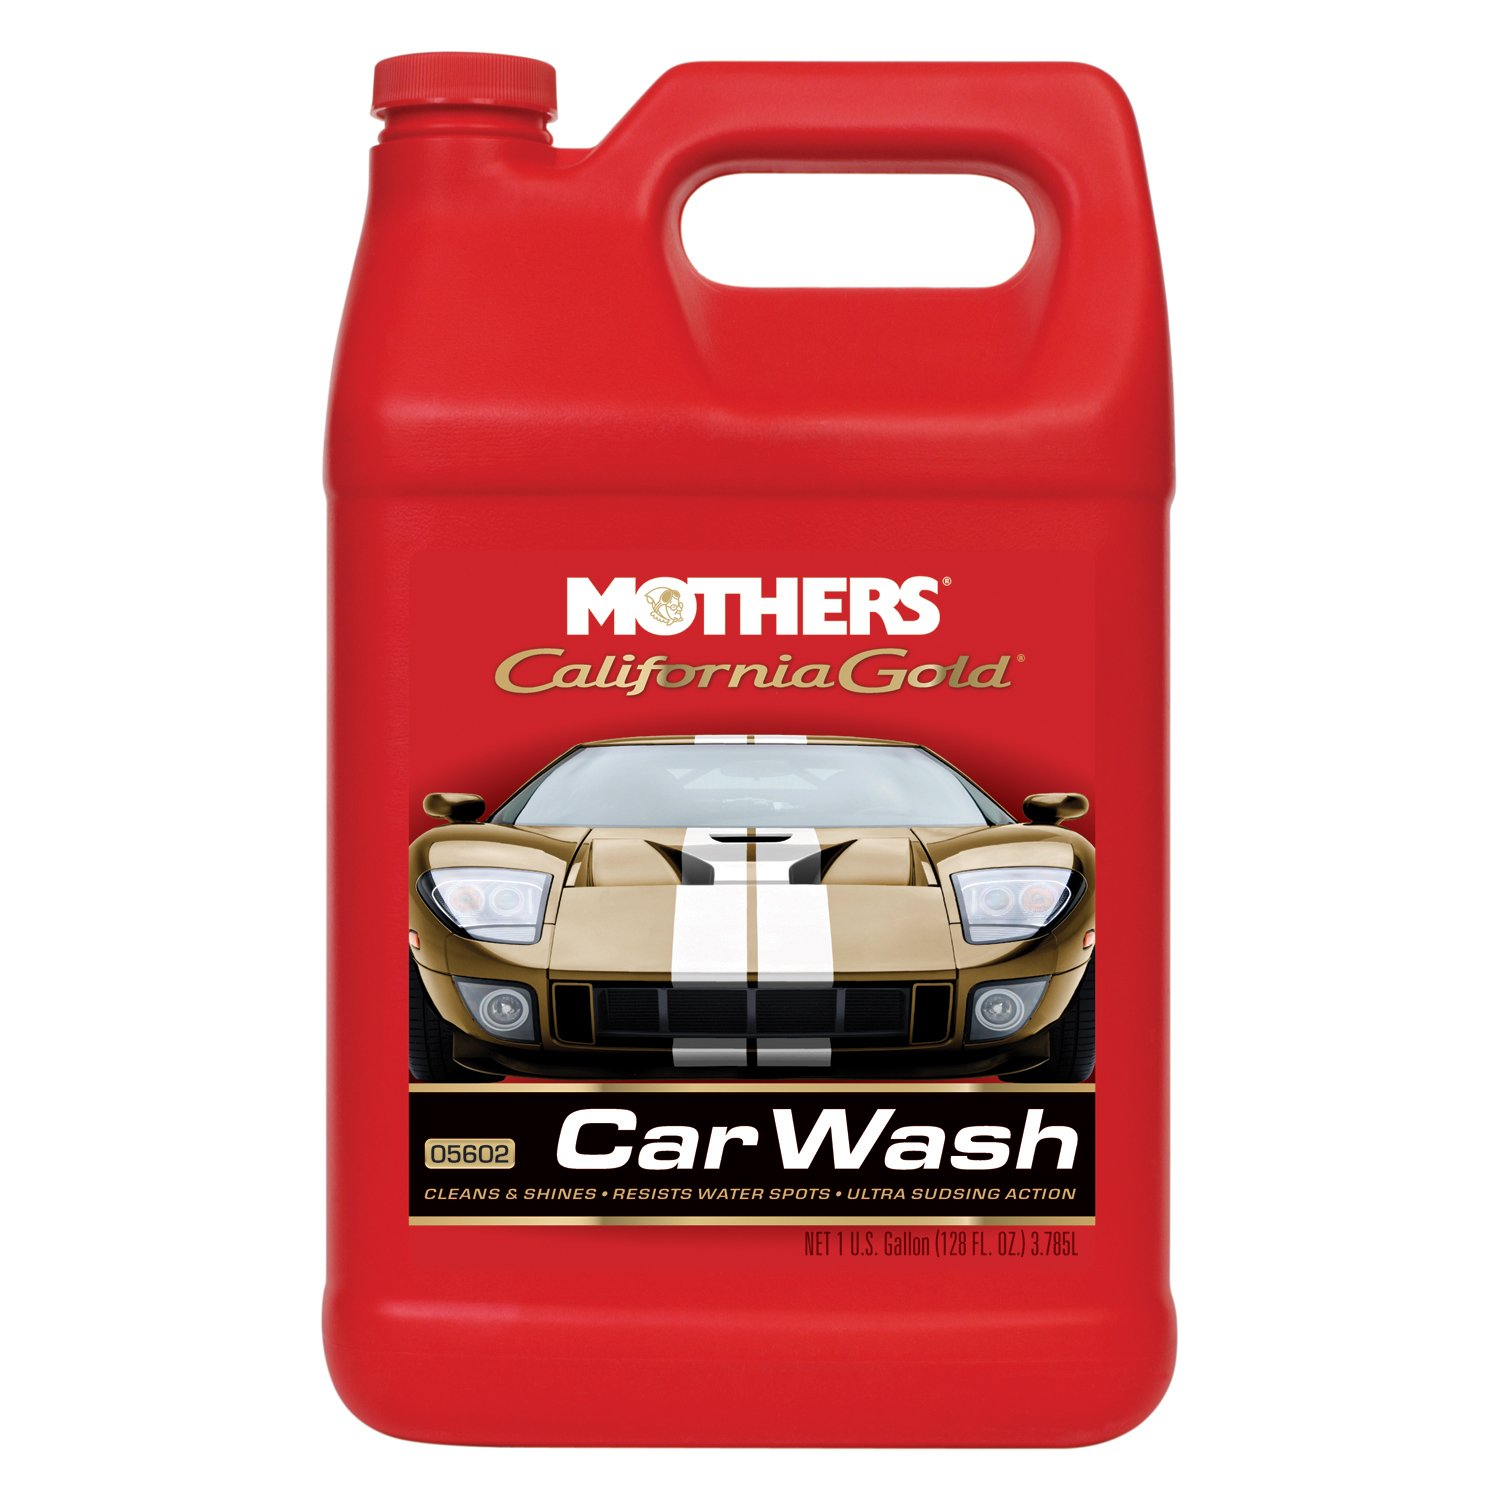 Mothers 05602-4 California Gold Car Wash - 1 Gallon, (Pack of 4) by Mothers (Image #1)